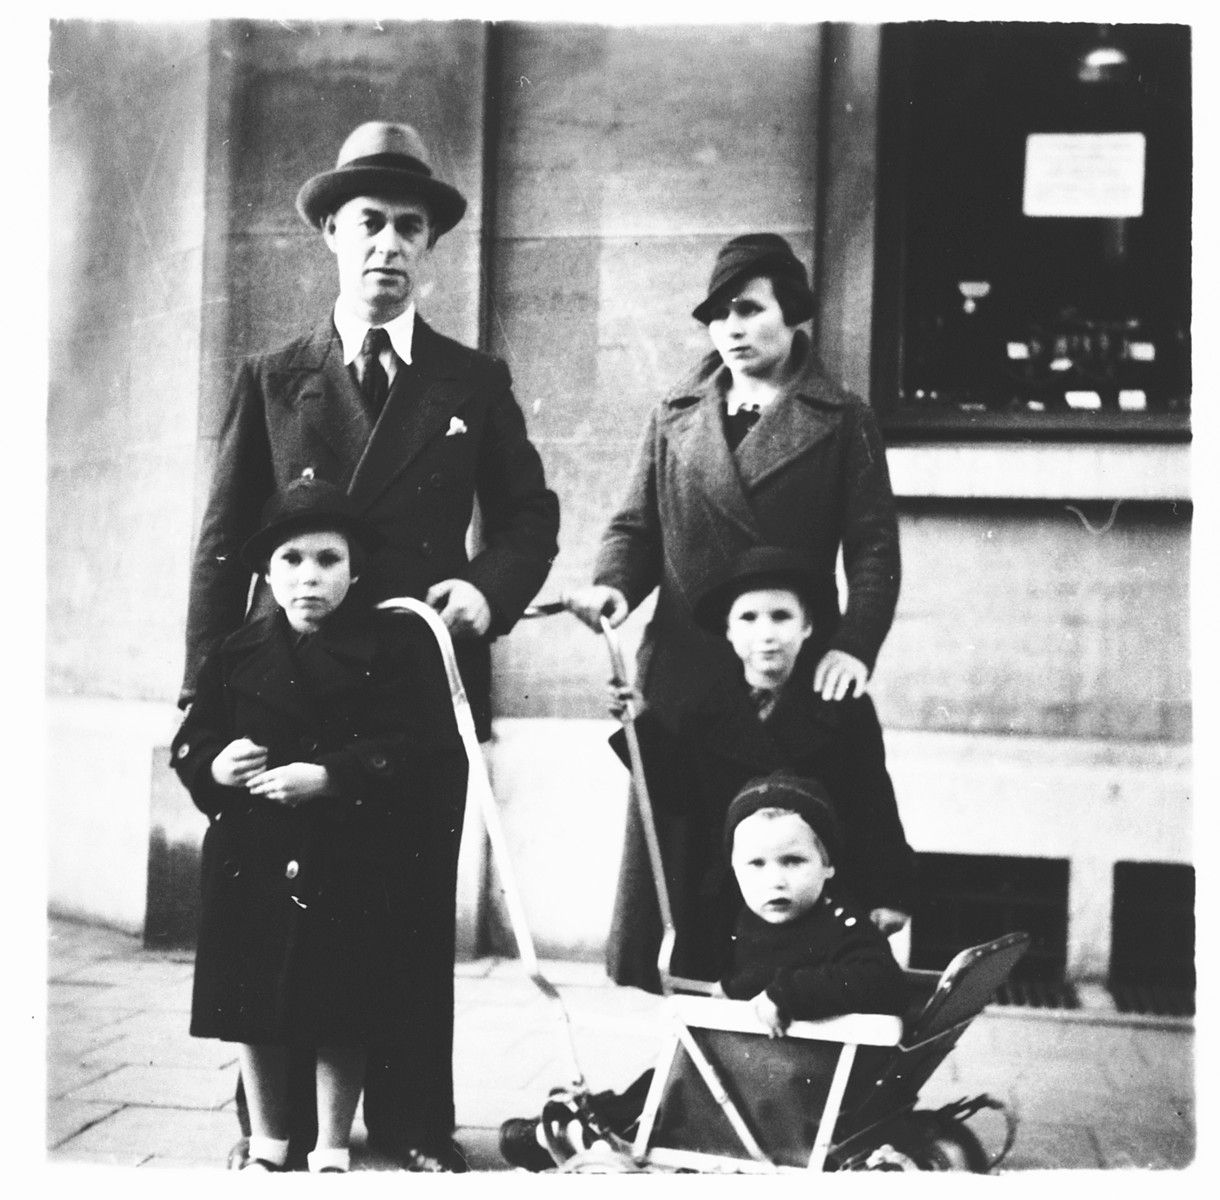 The Altenberg family poses outside a store in Antwerp.